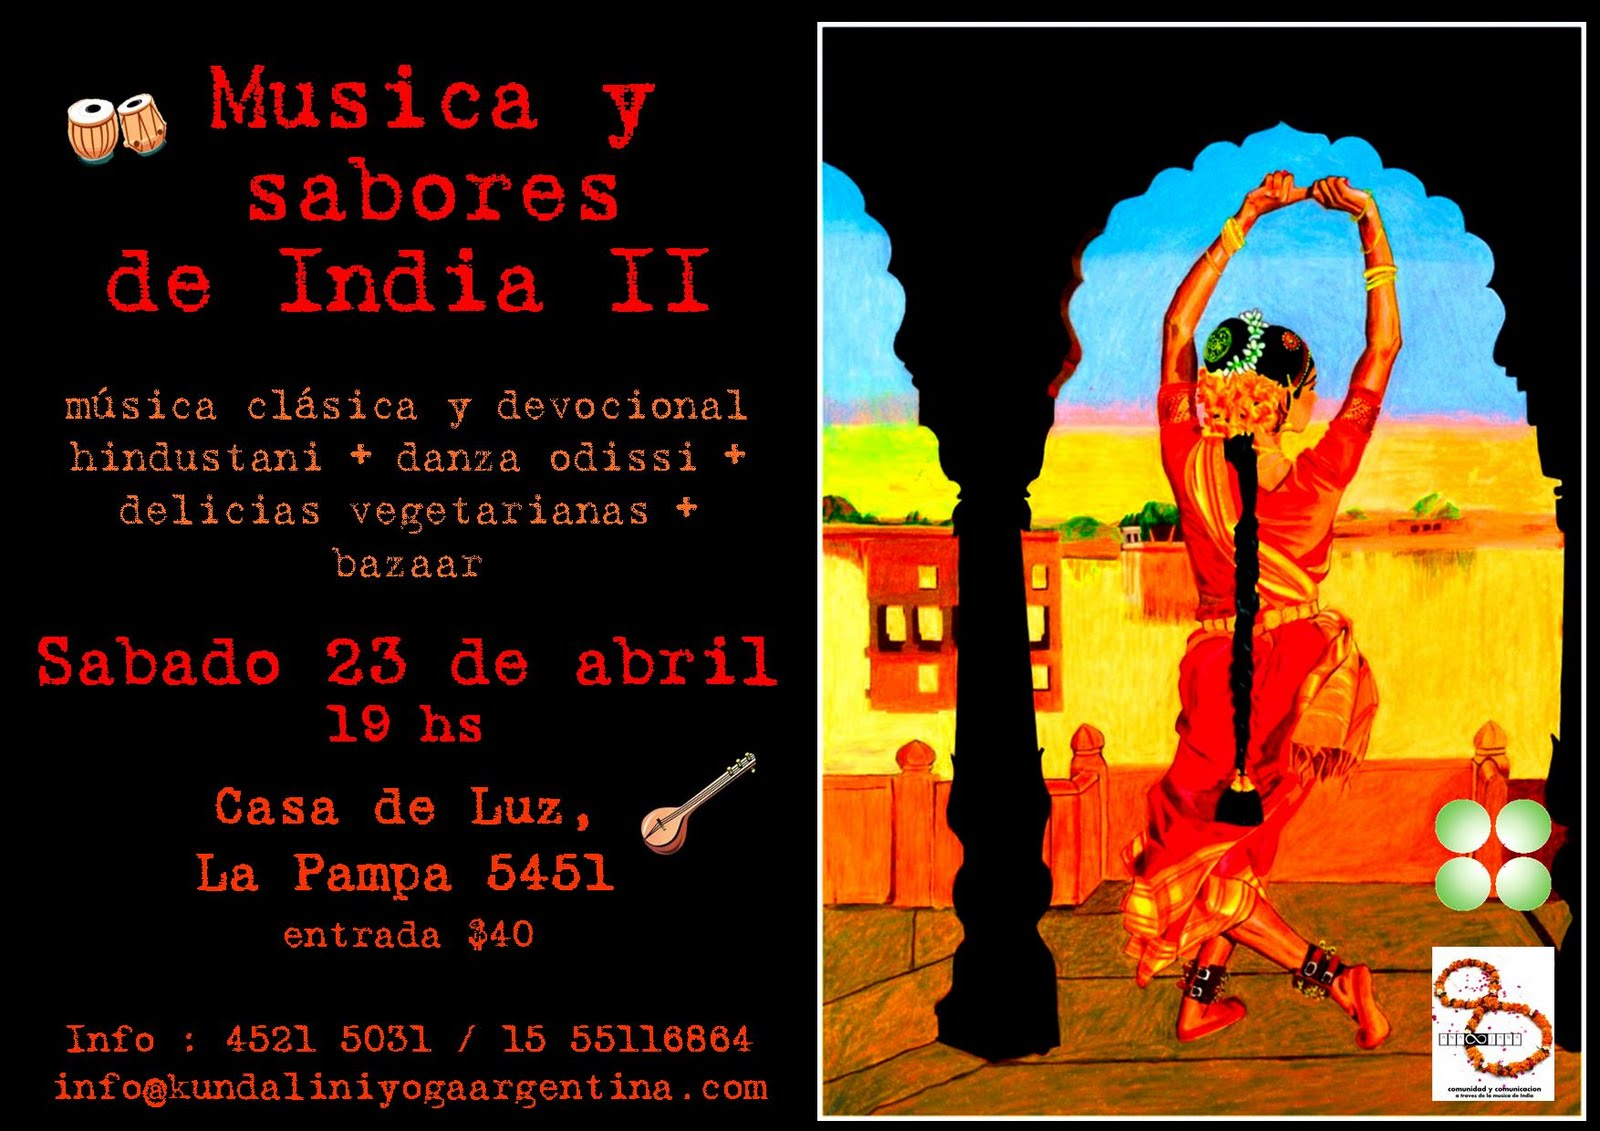 M sica cl sica de la india marzo 2011 for Casa piscitelli musica clasica